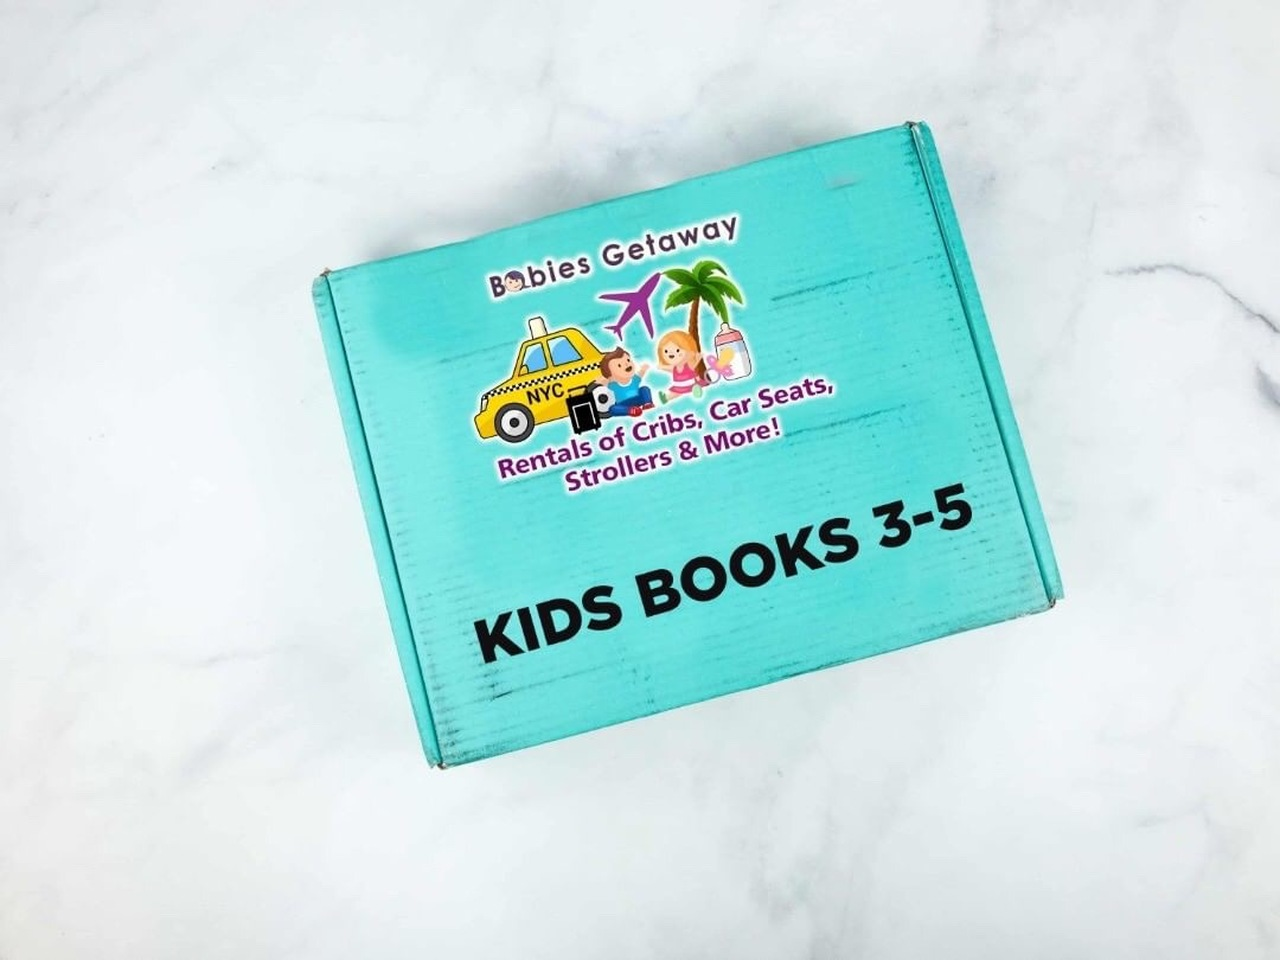 Kids Books 3-5